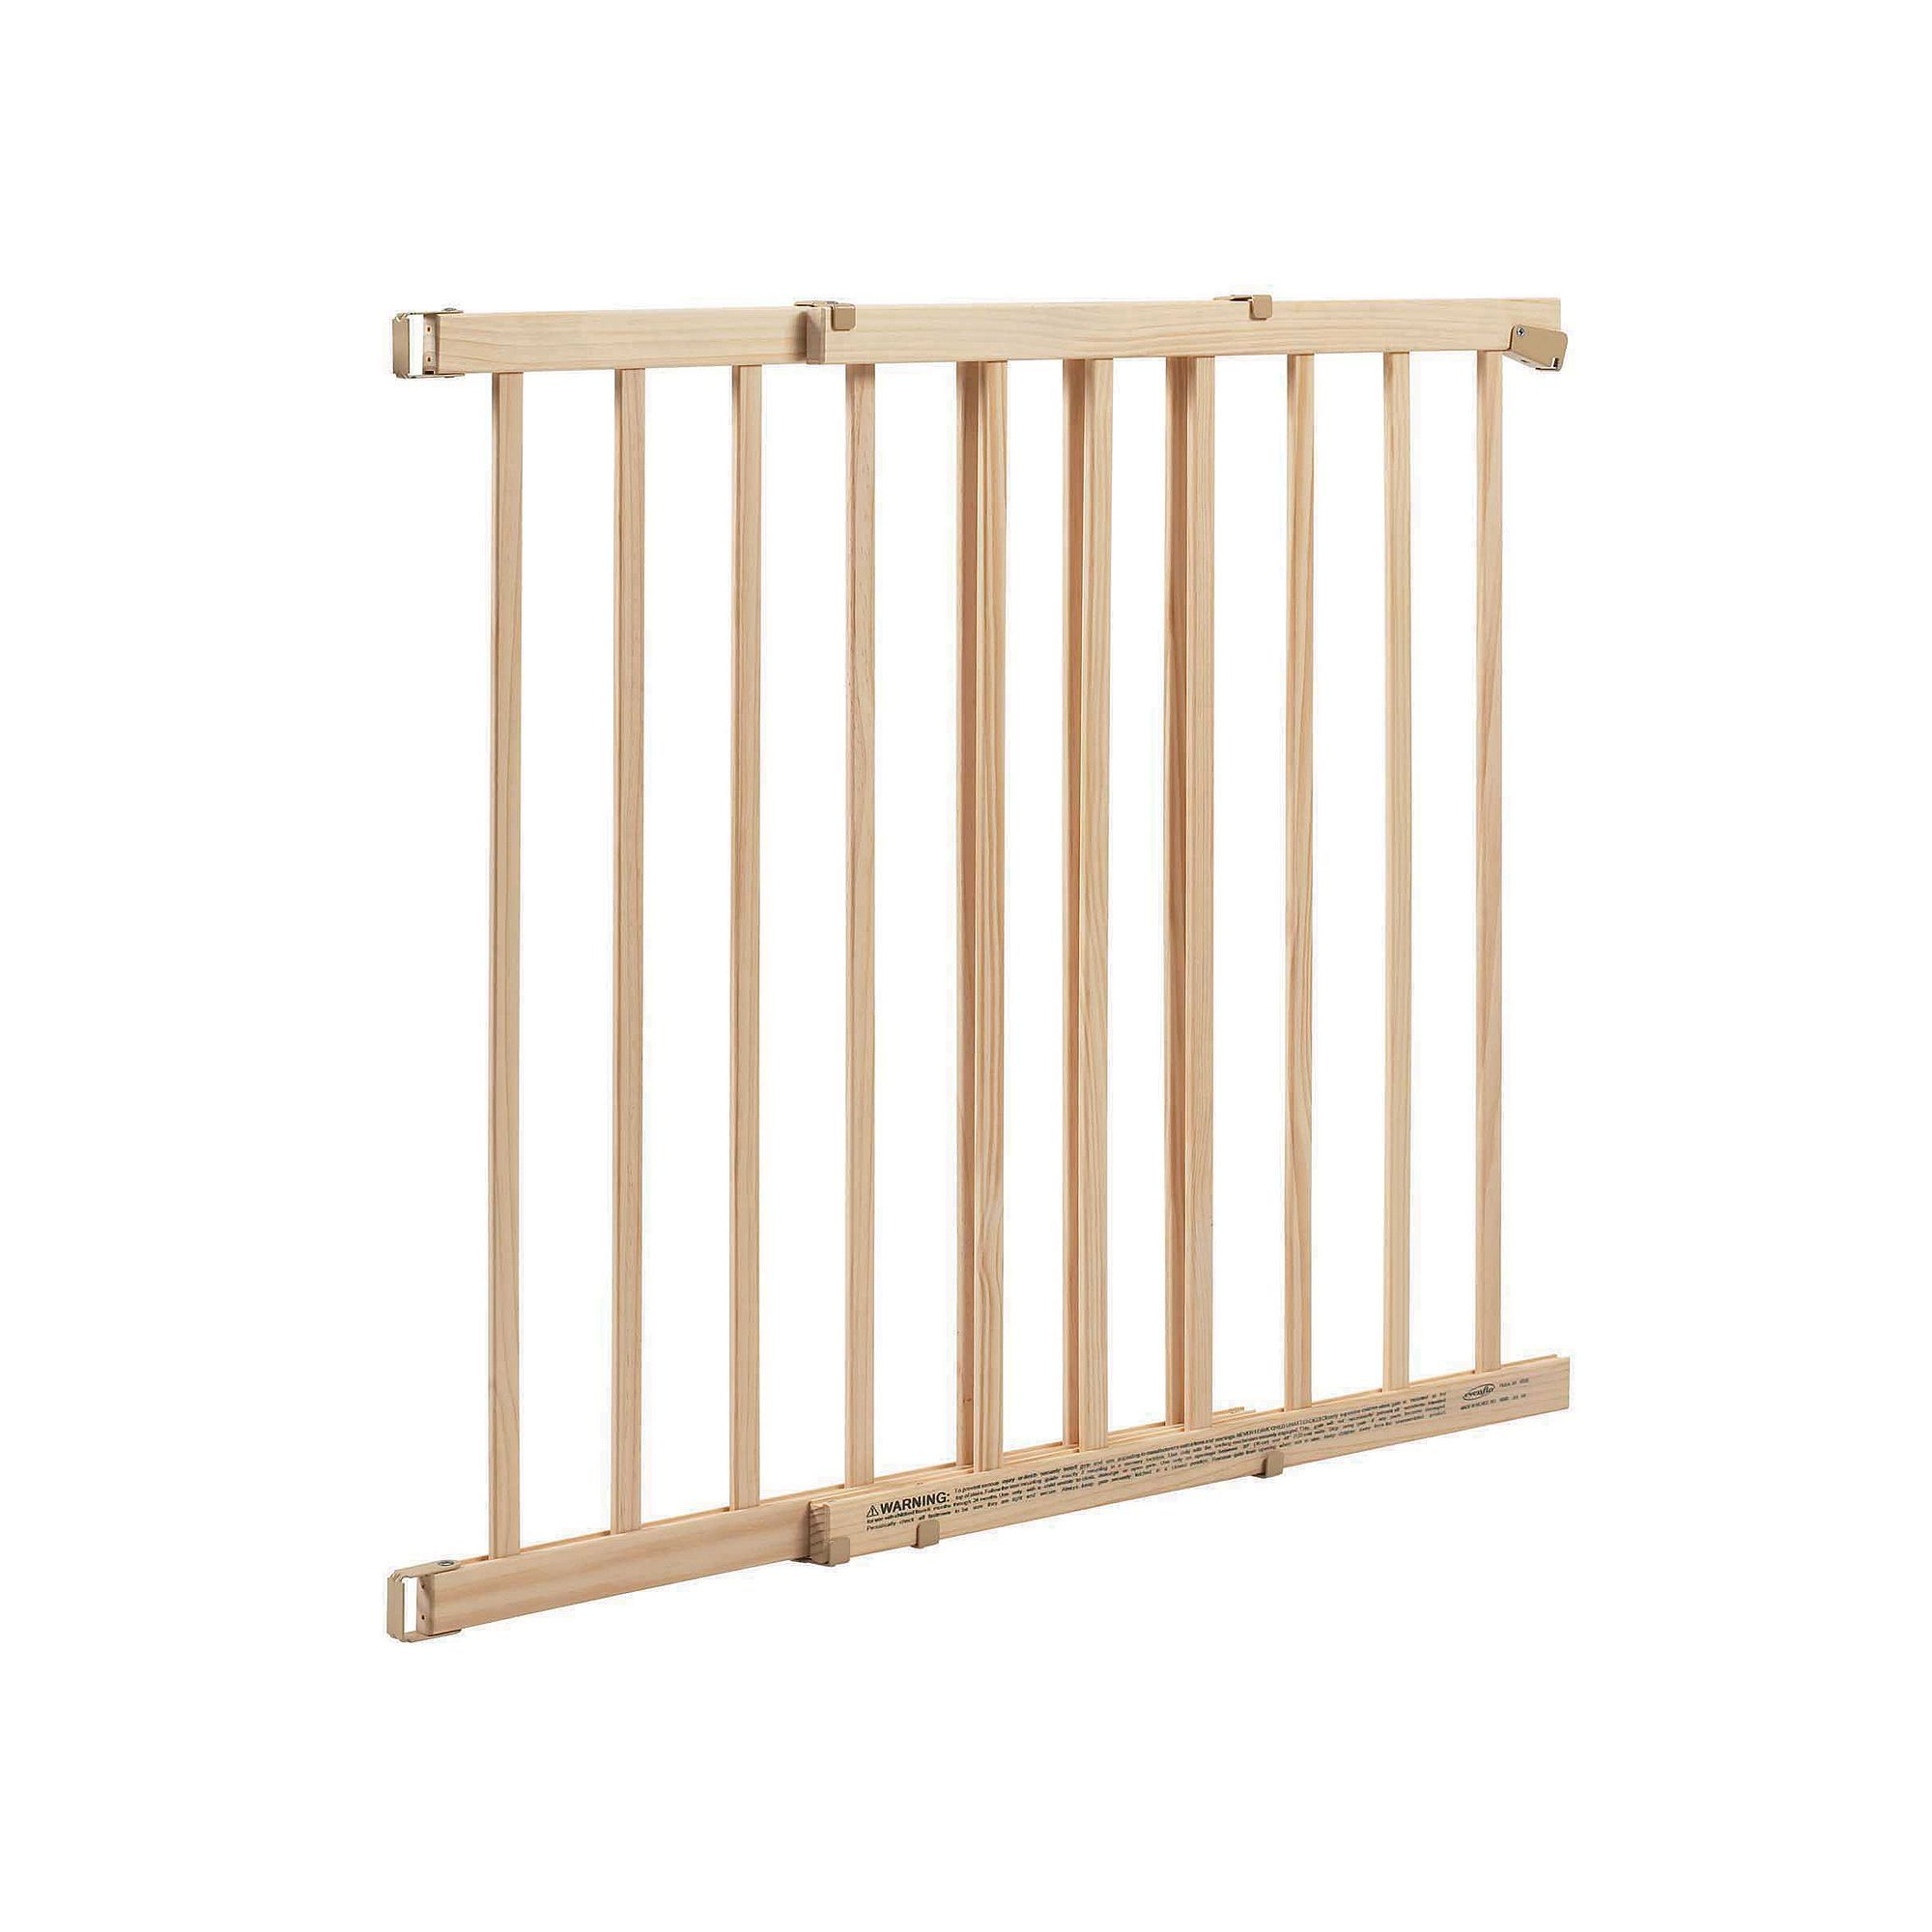 Evenflo TopofStair Extra Tall Gate Wall mounted baby